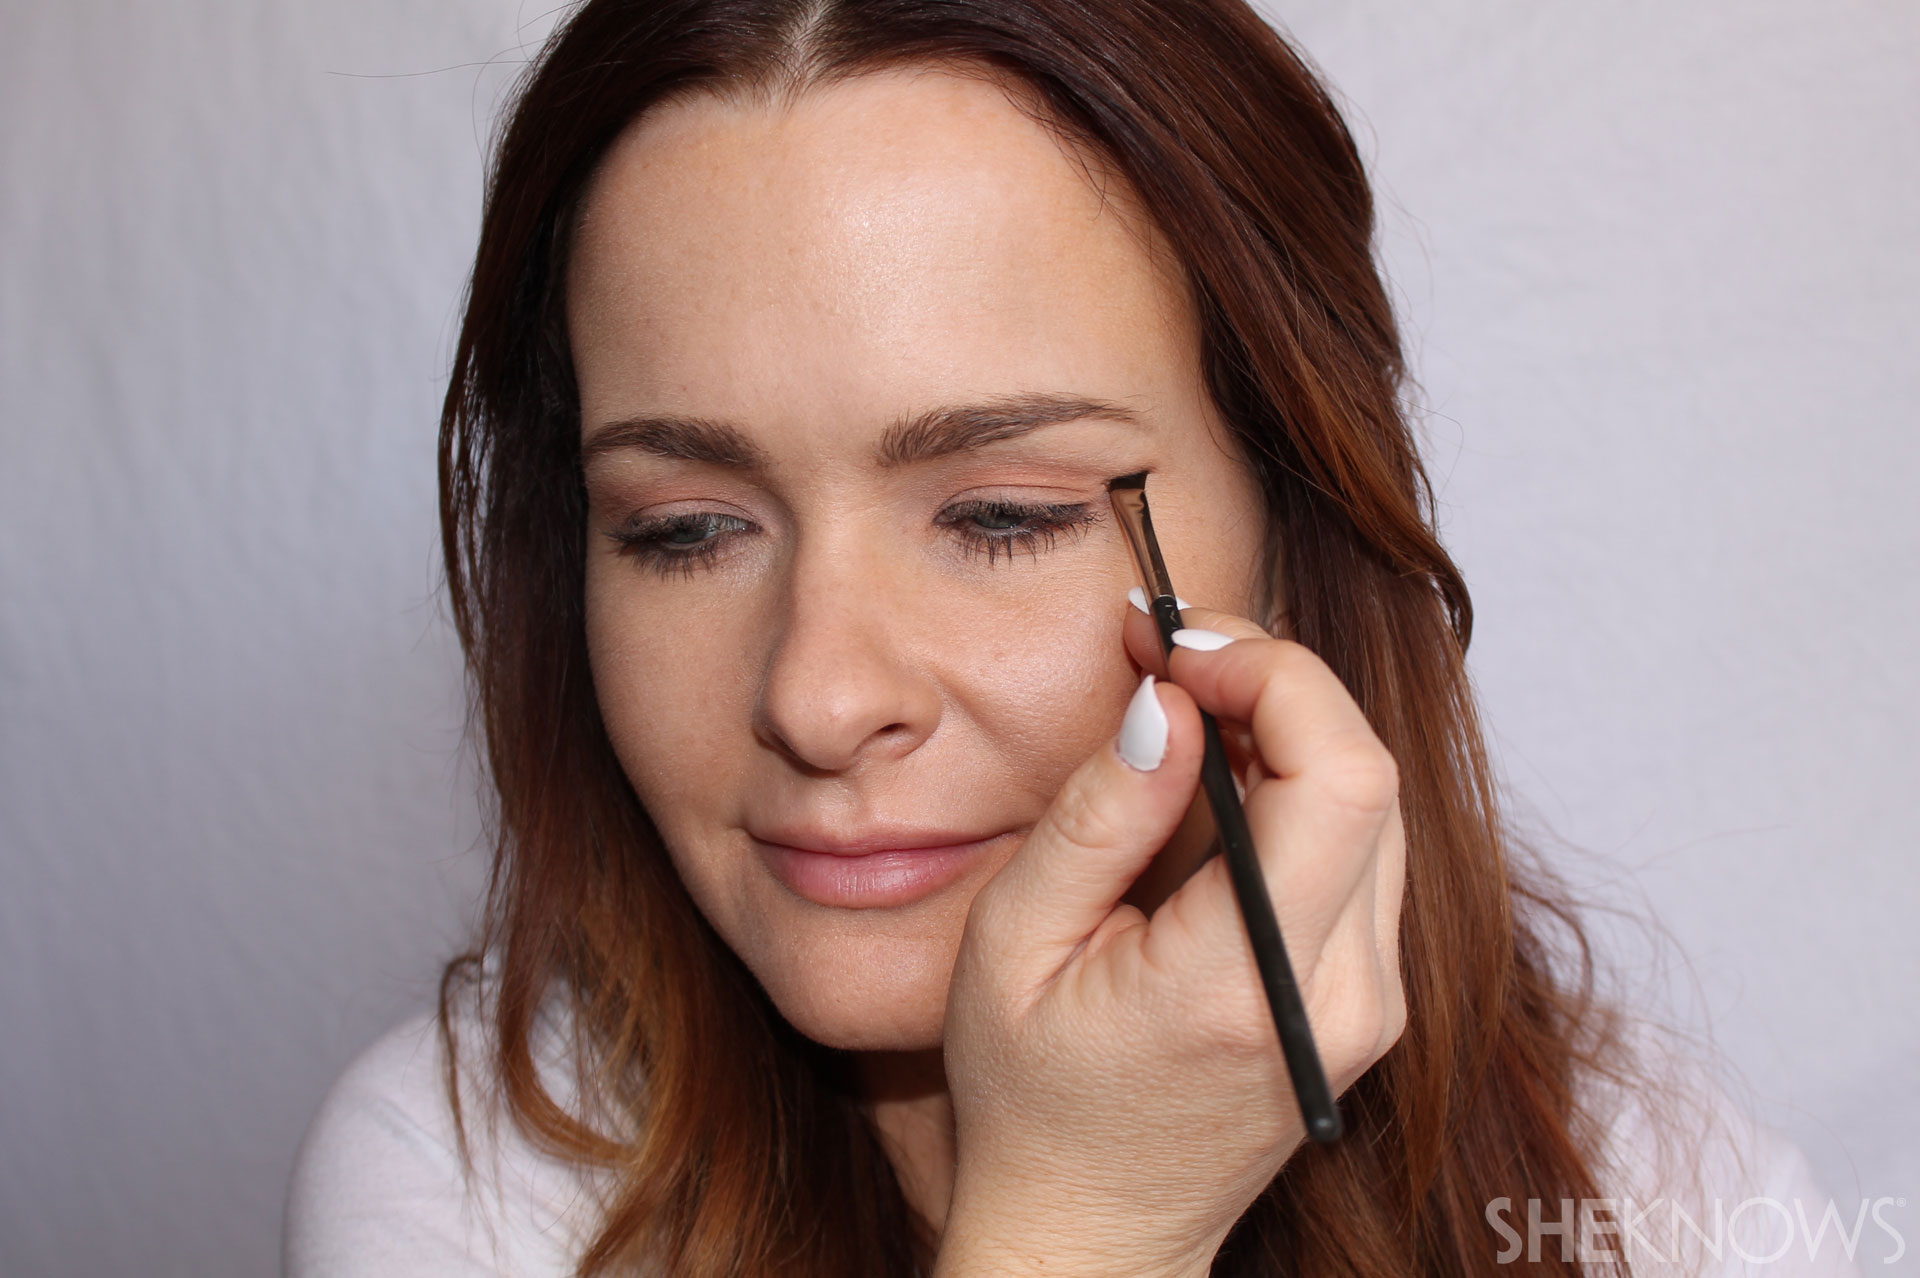 DIY Extreme cateye and bold lips: Draw an angled line with black eyeliner